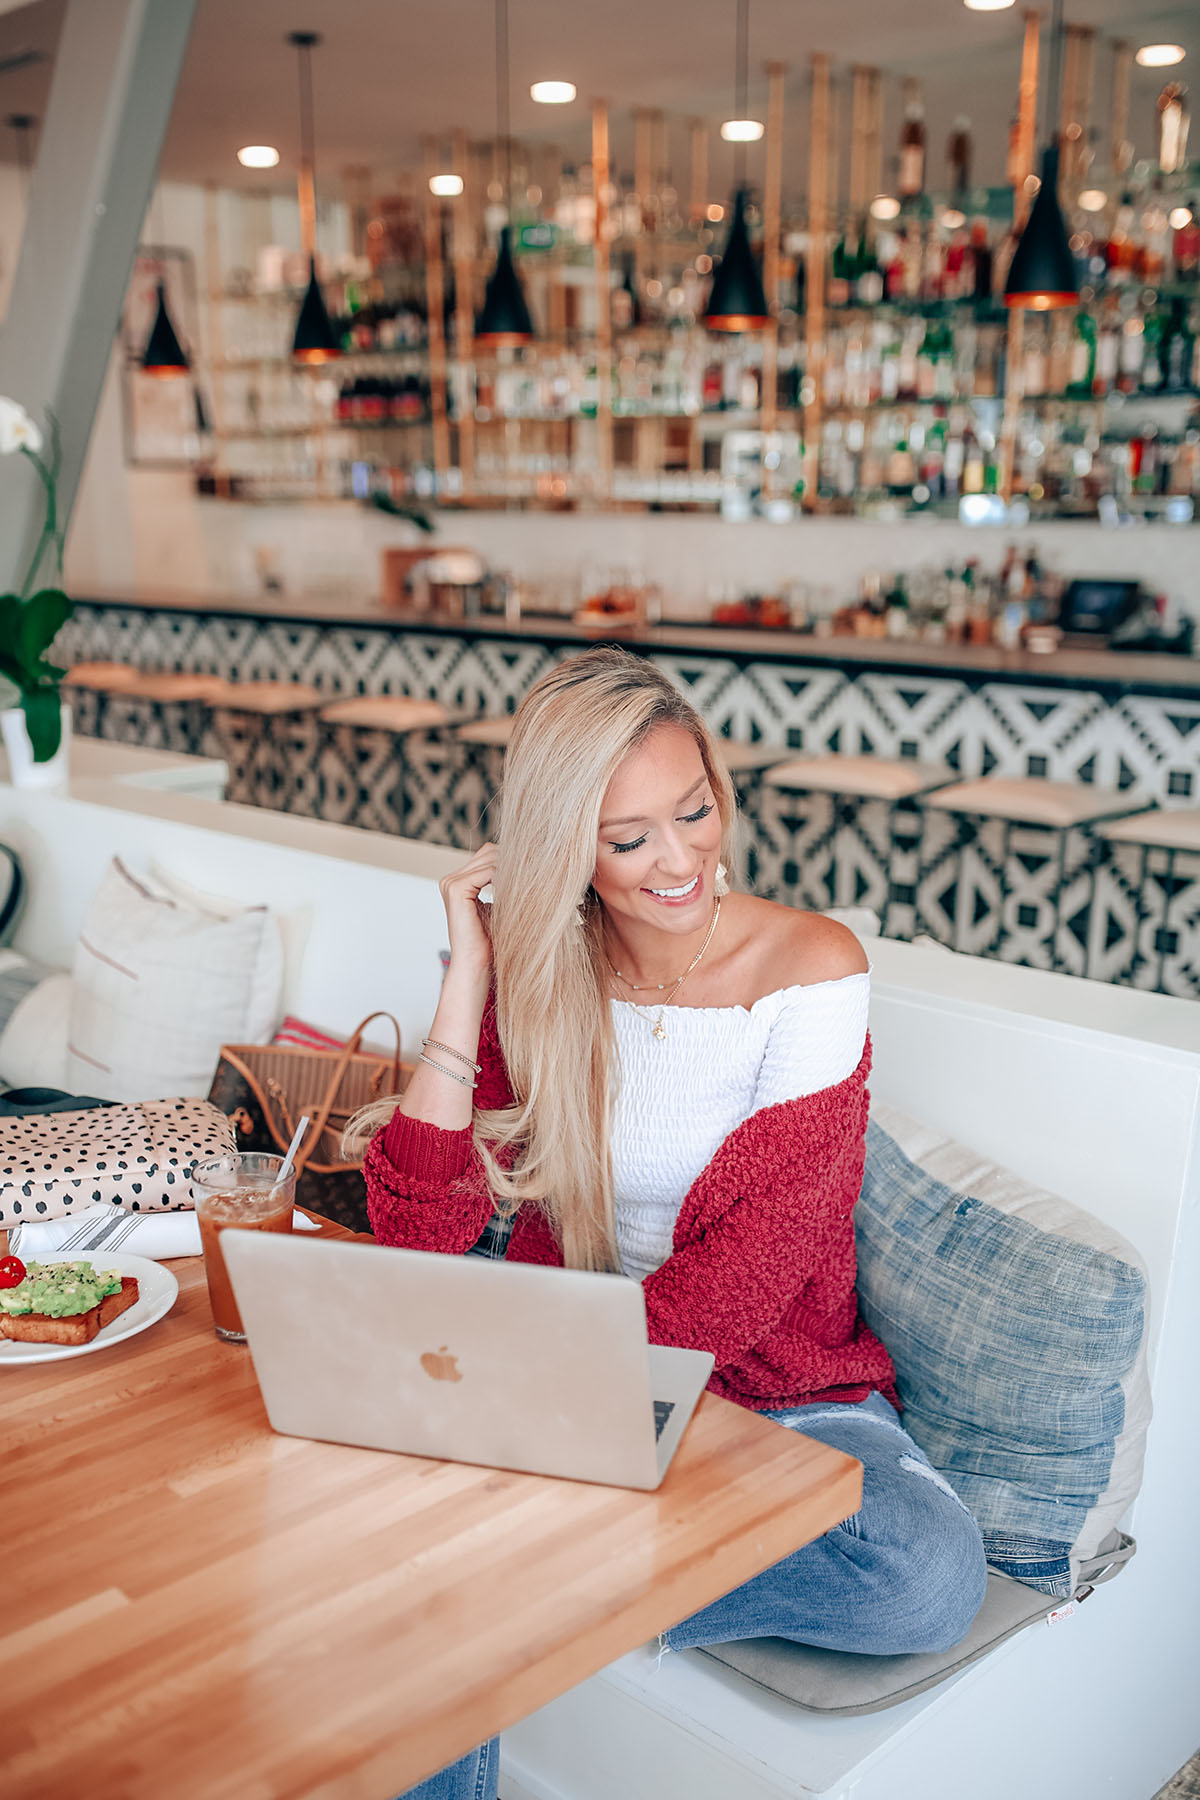 The Biggest Misconceptions About Bloggers Explained